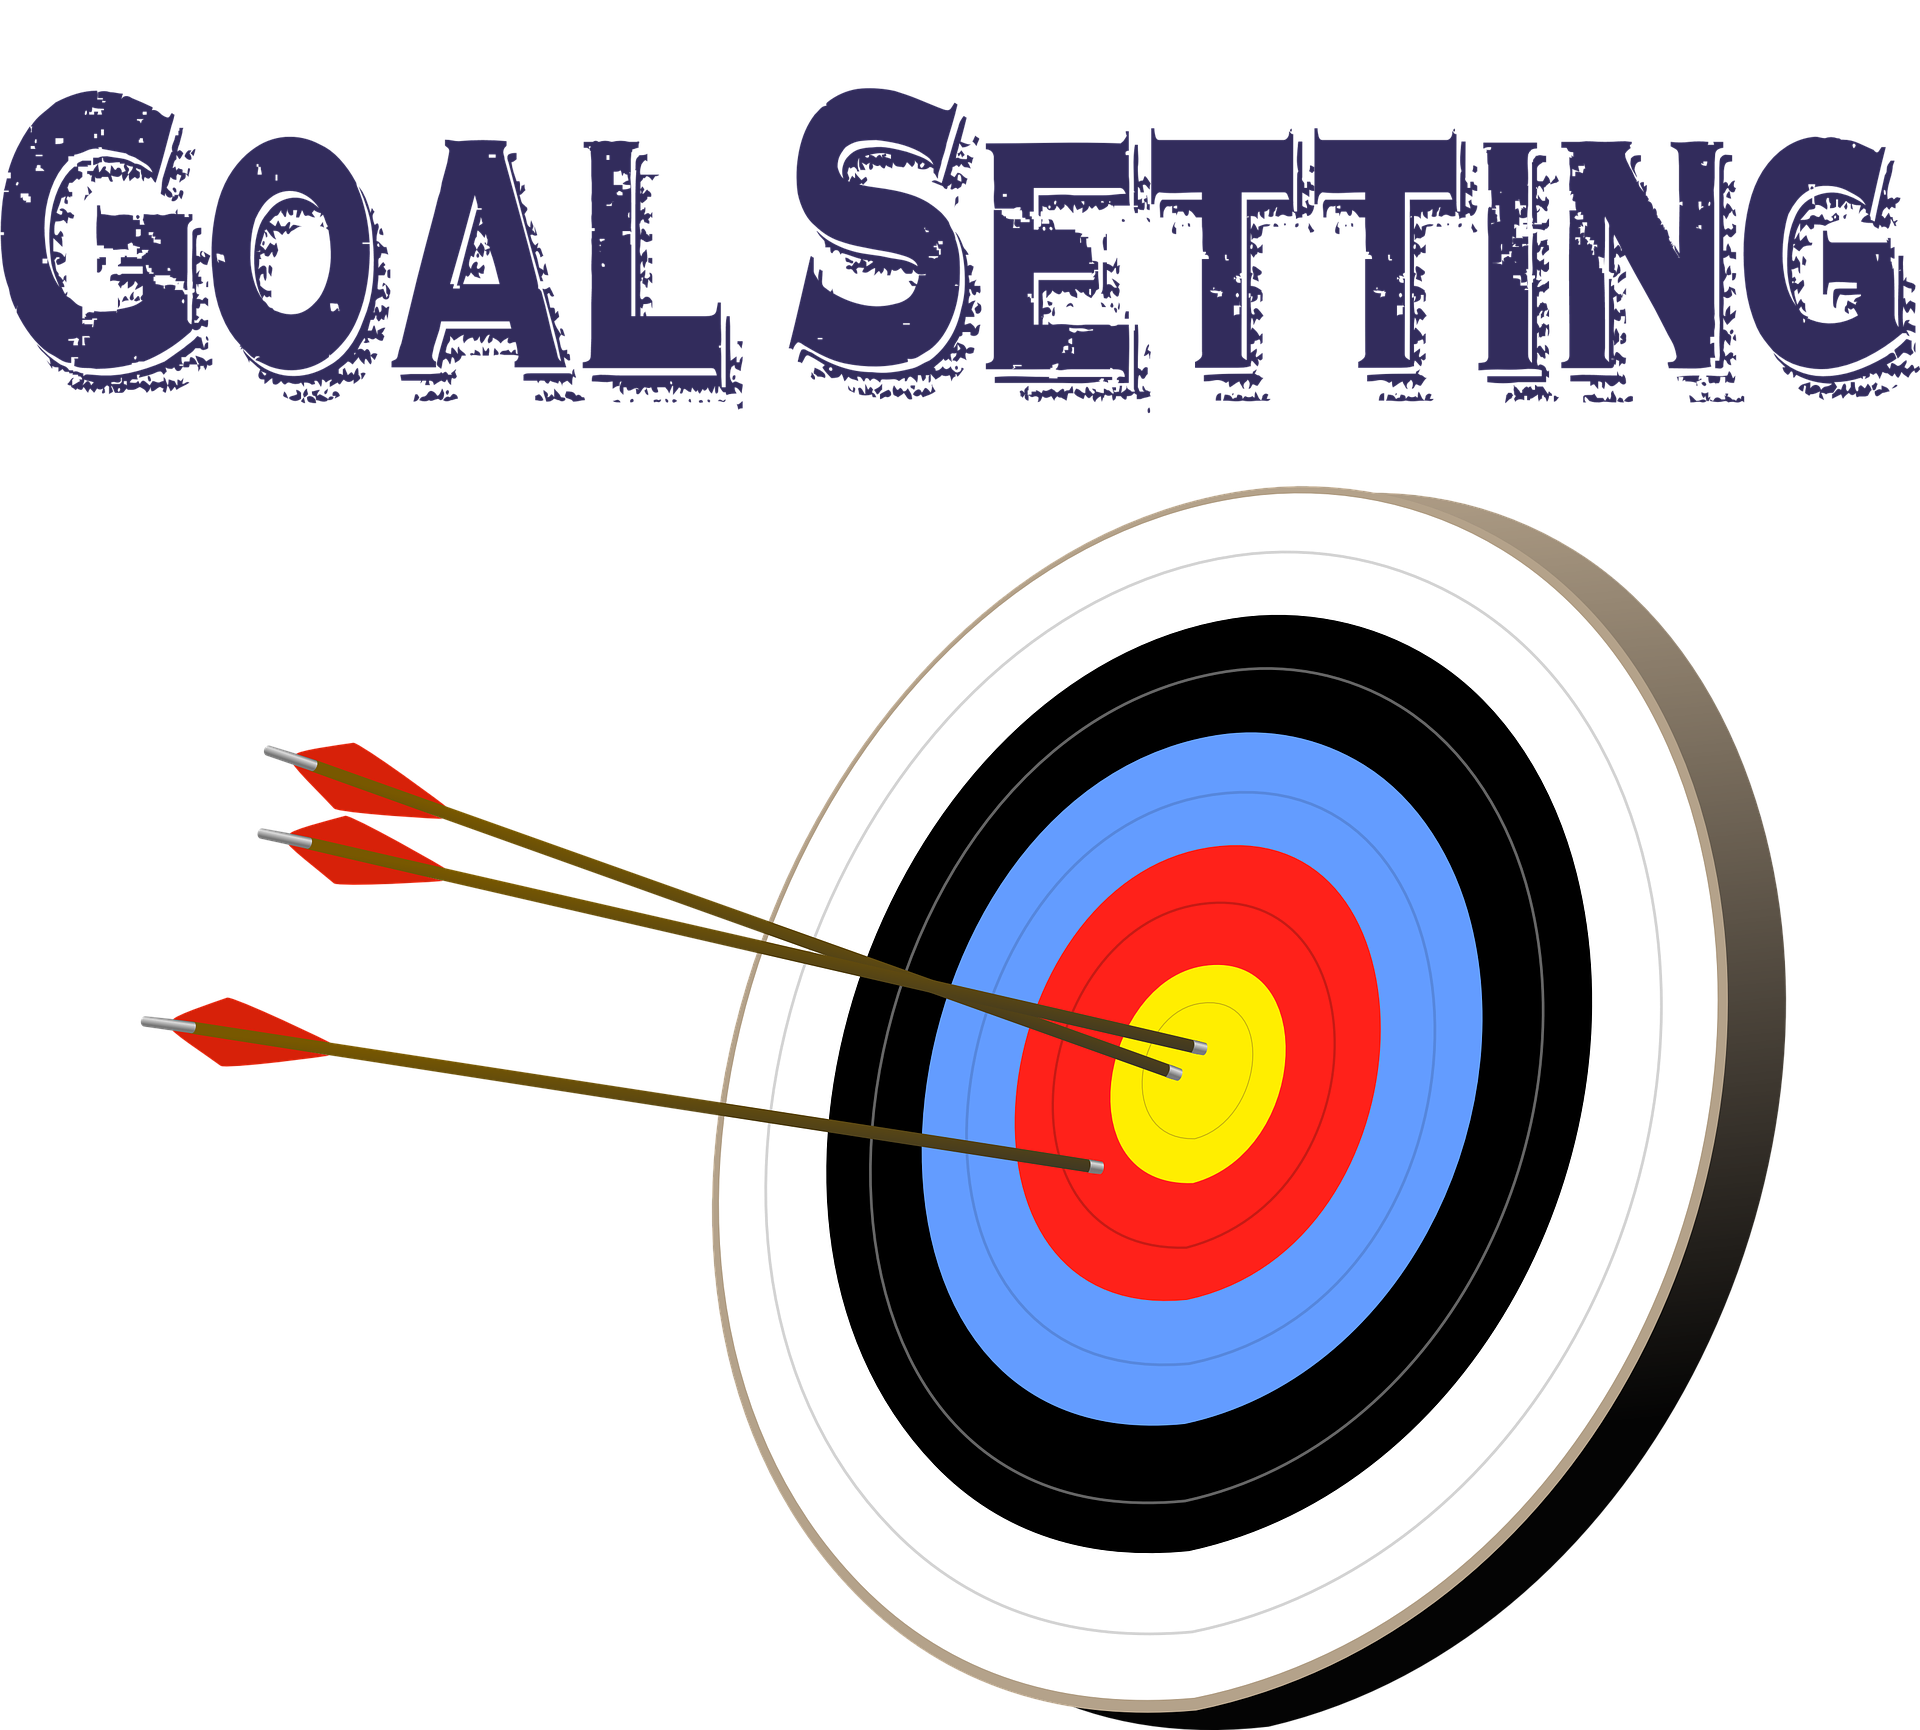 Considerations for Goal Setting